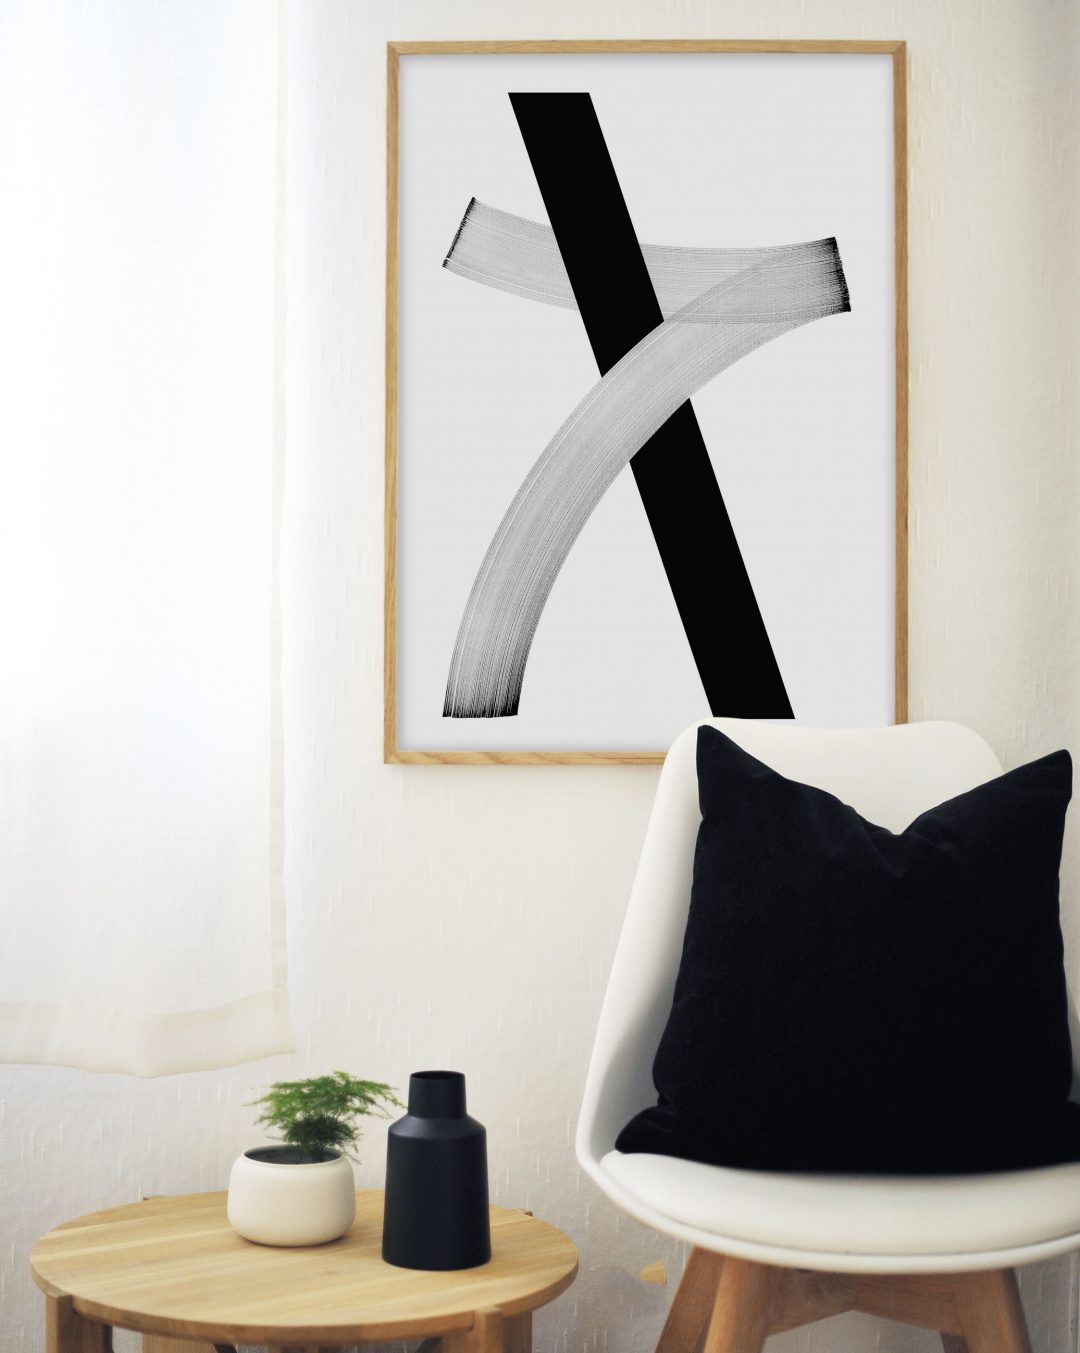 Nordic minimalism - art print from monoqrome.co